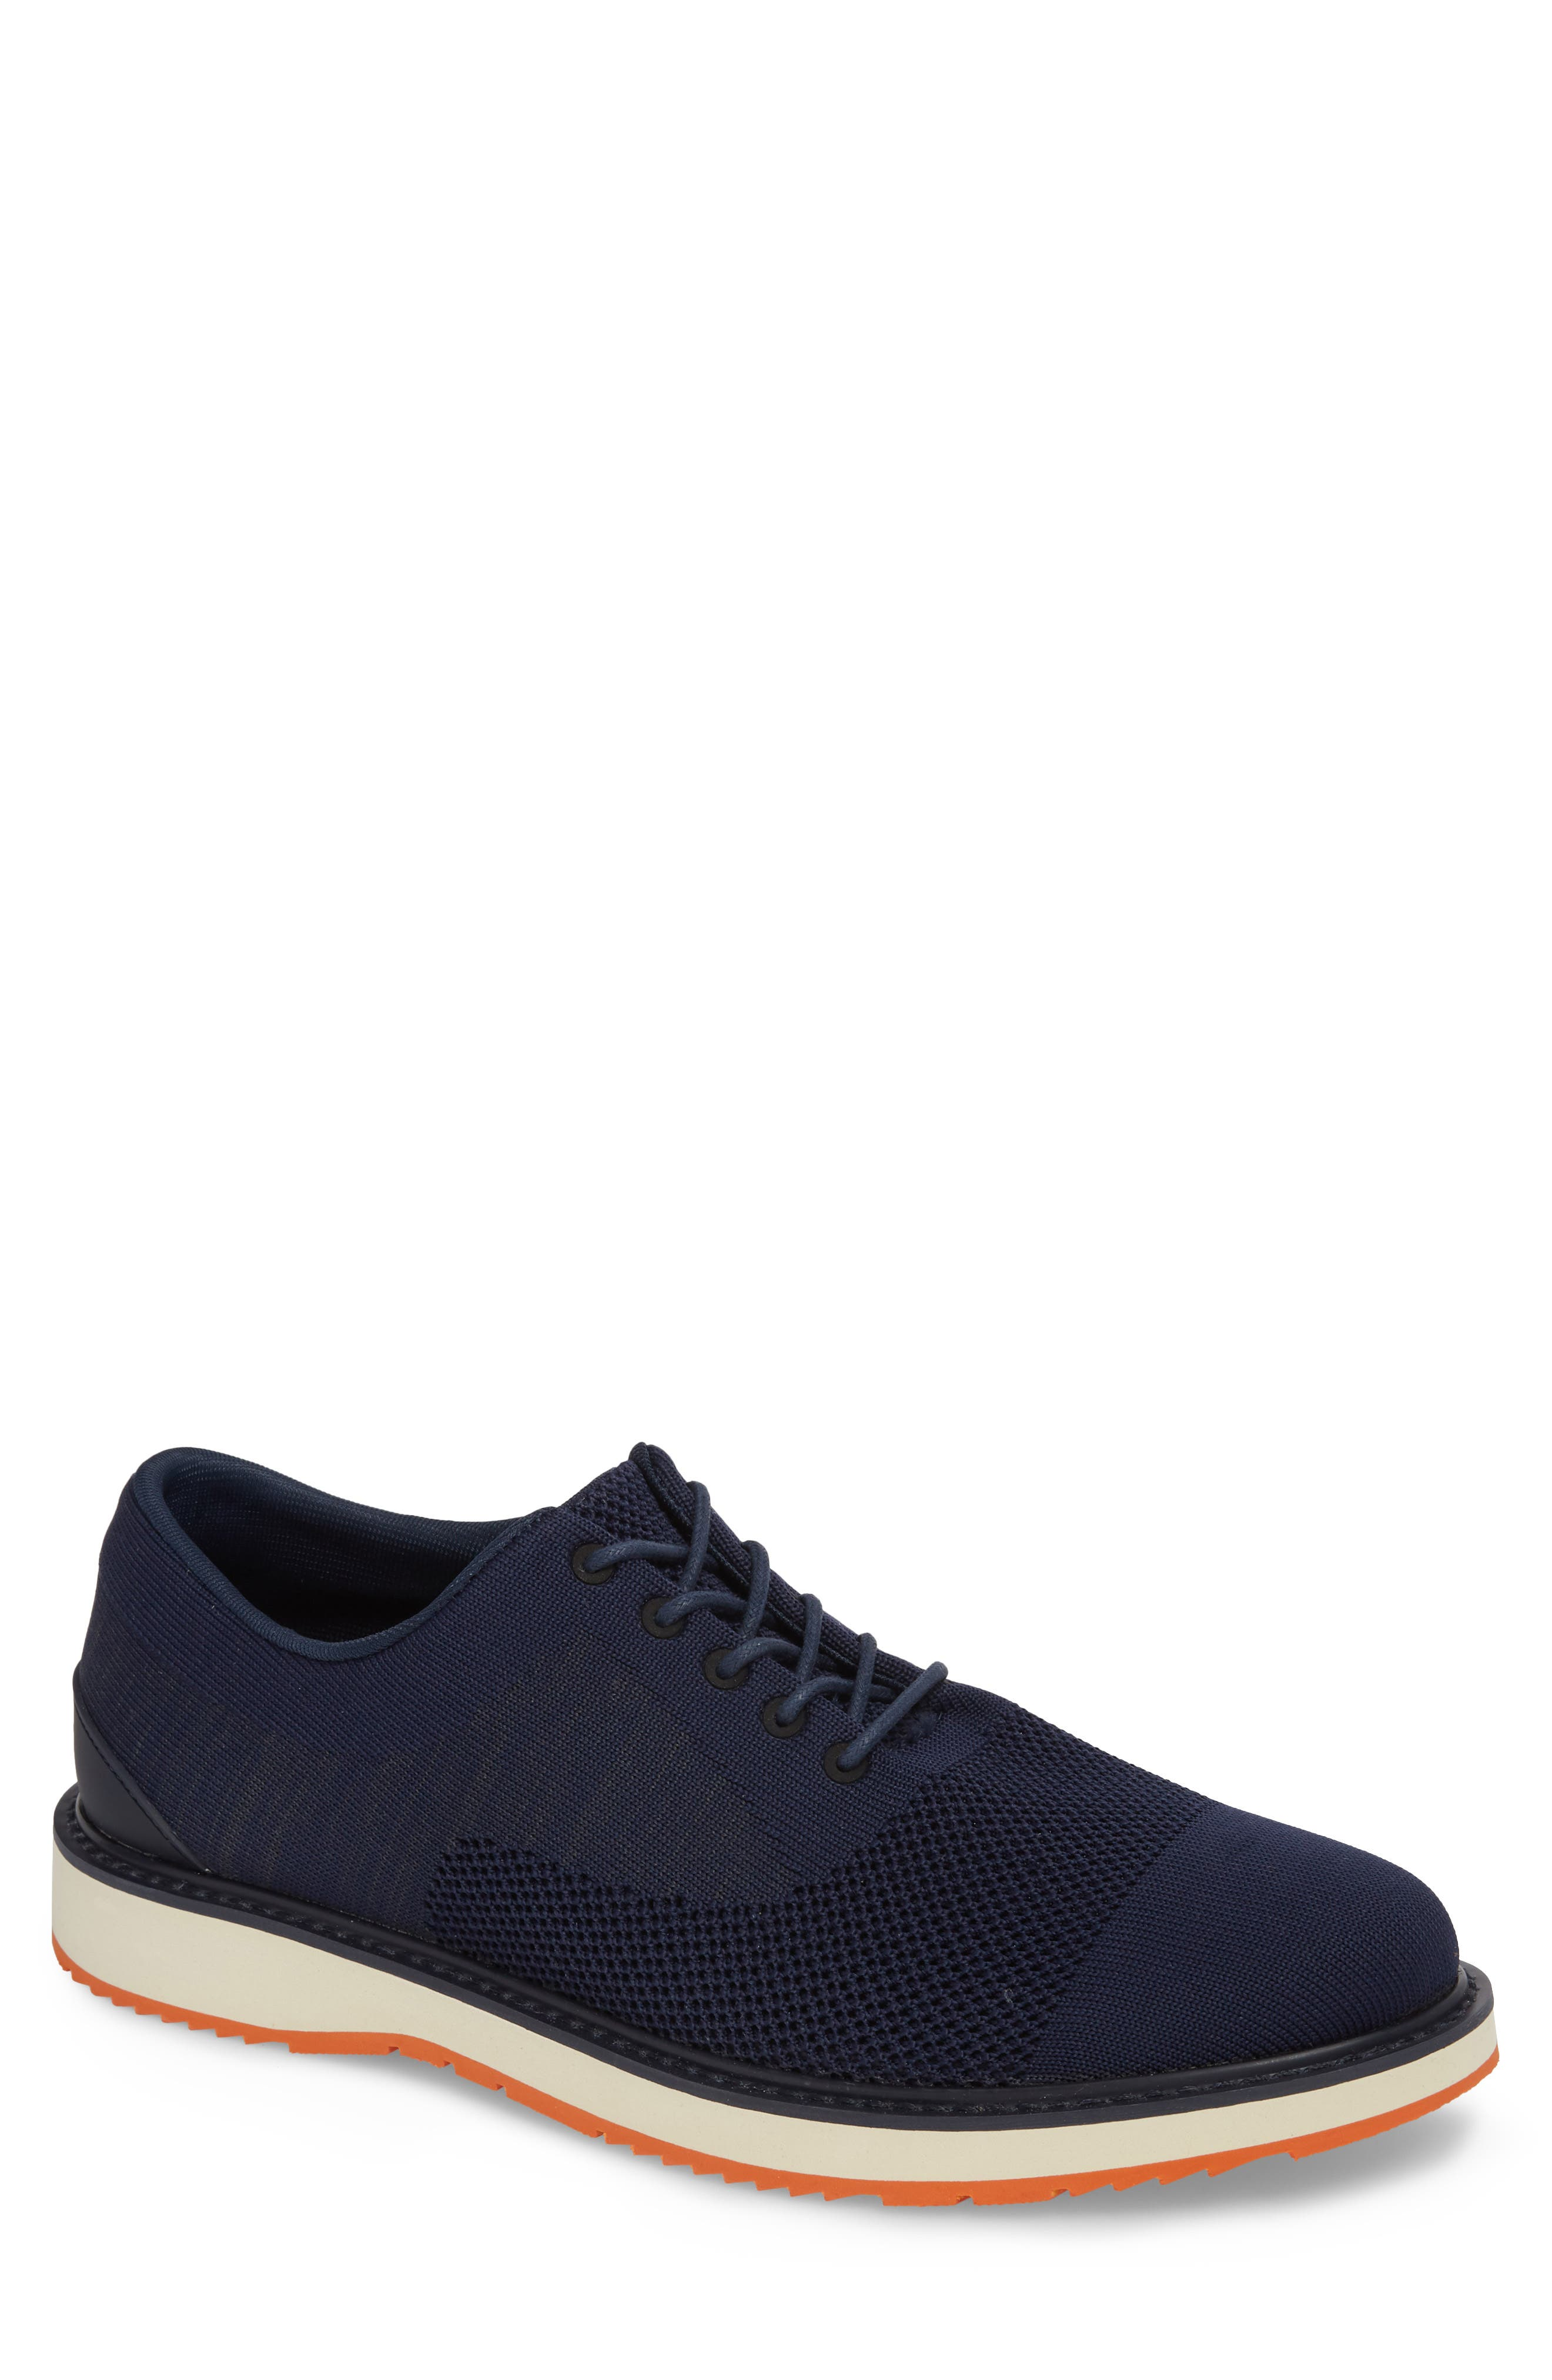 Alternate Image 1 Selected - Swims Barry Knit Oxford (Men)